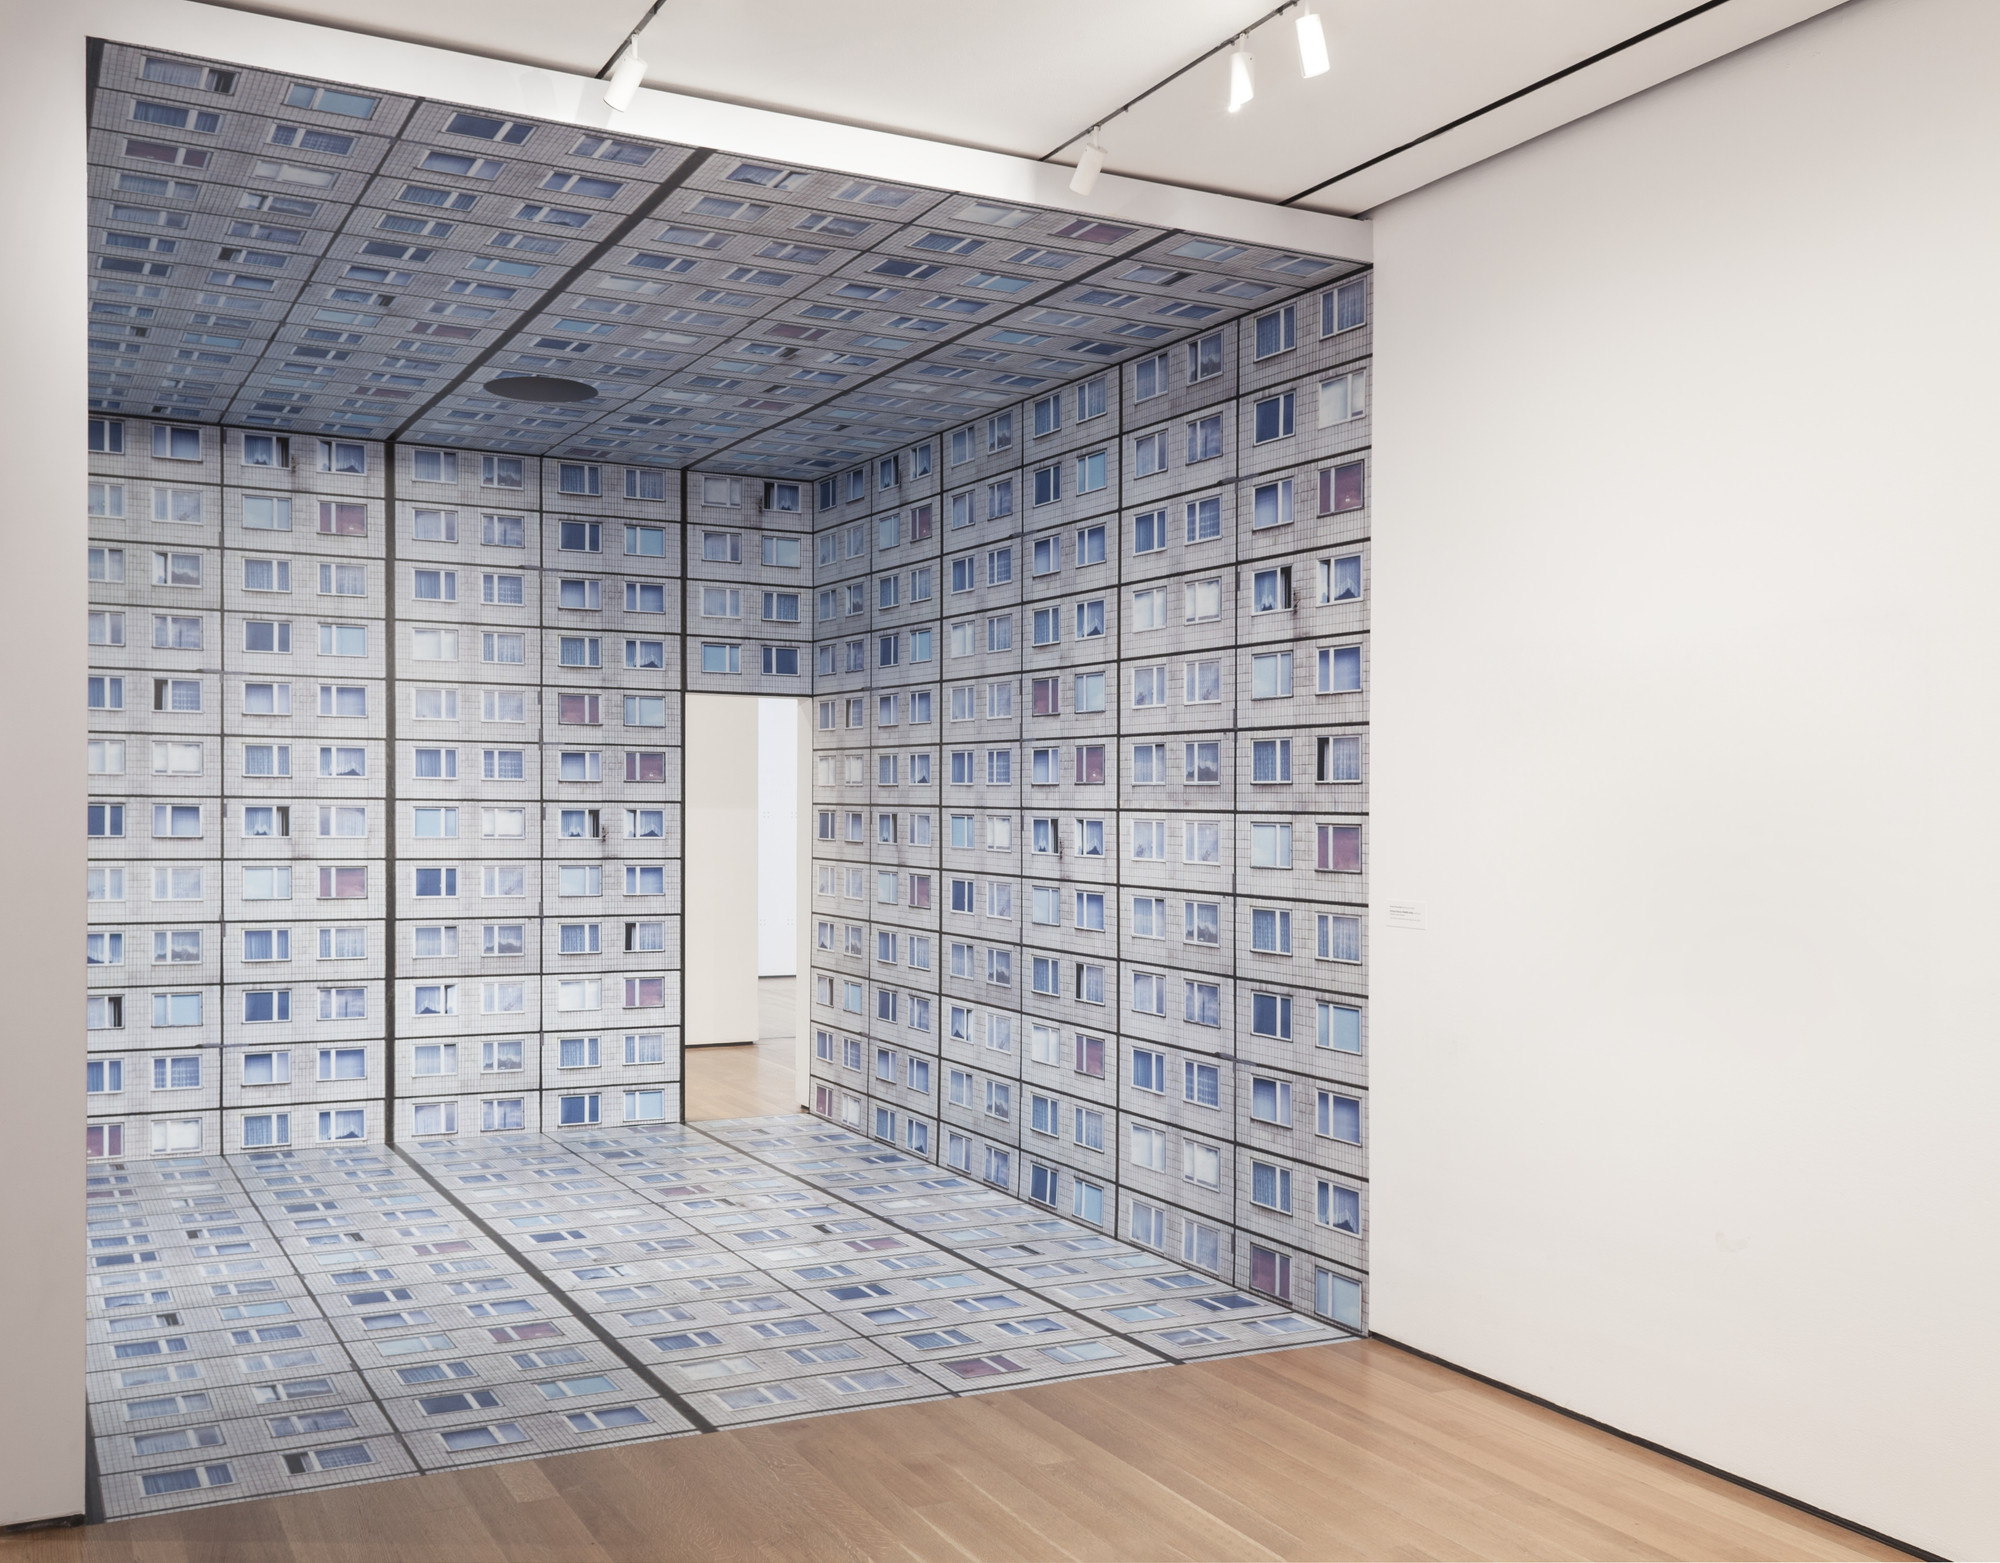 Annett Zinsmeister. Virtual Interior MoMA white. 2007/2015